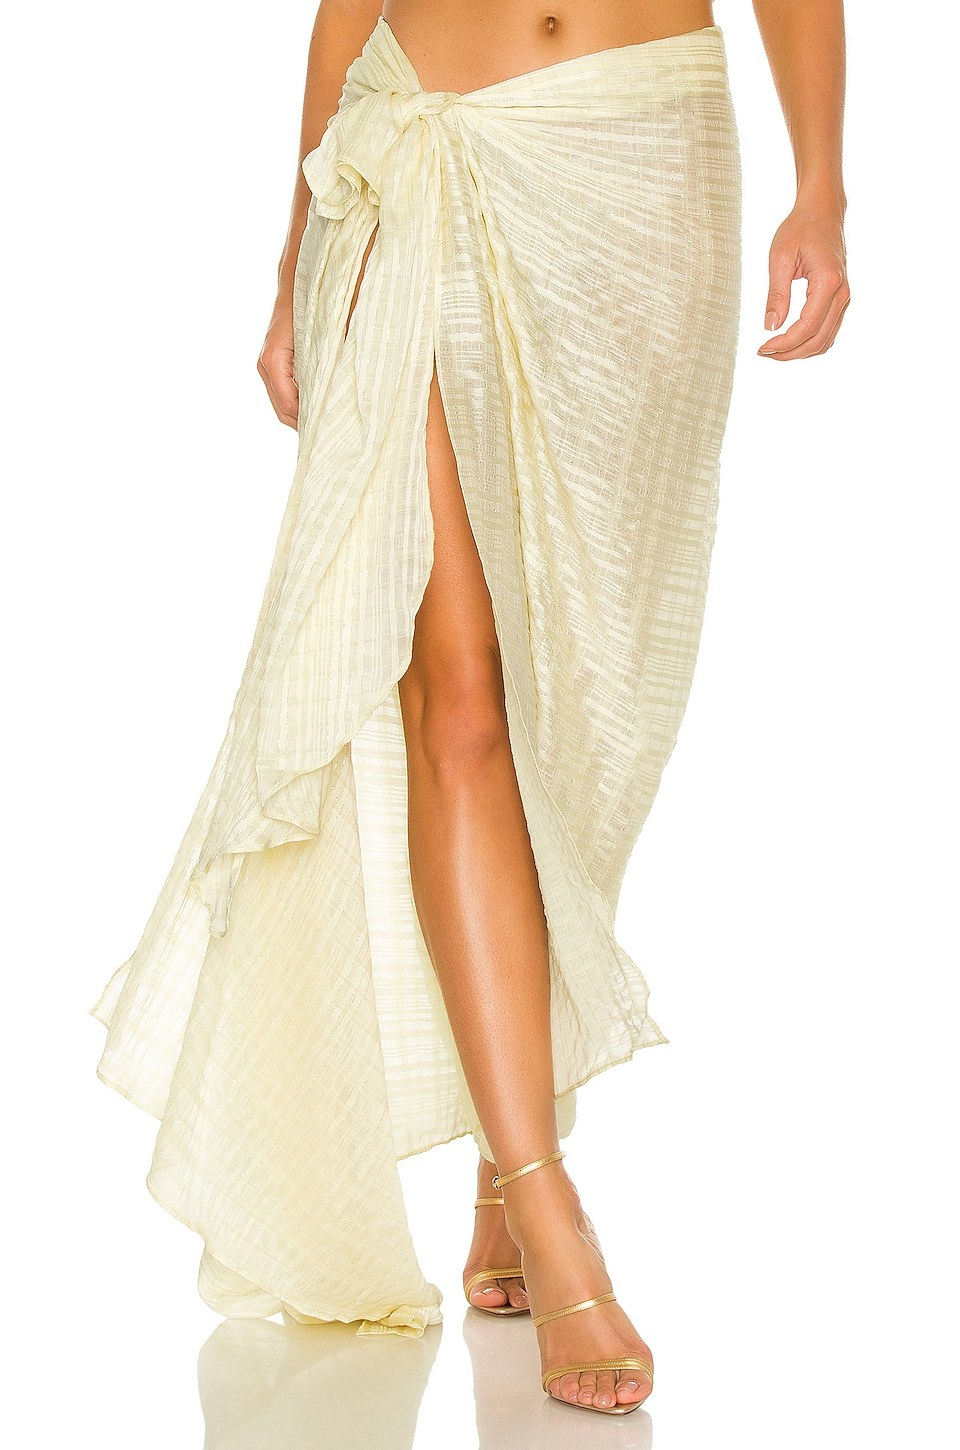 Amari Skirt by Bronx and Banco, available on revolve.com for $450 Alessandra Ambrosio Skirt Exact Product